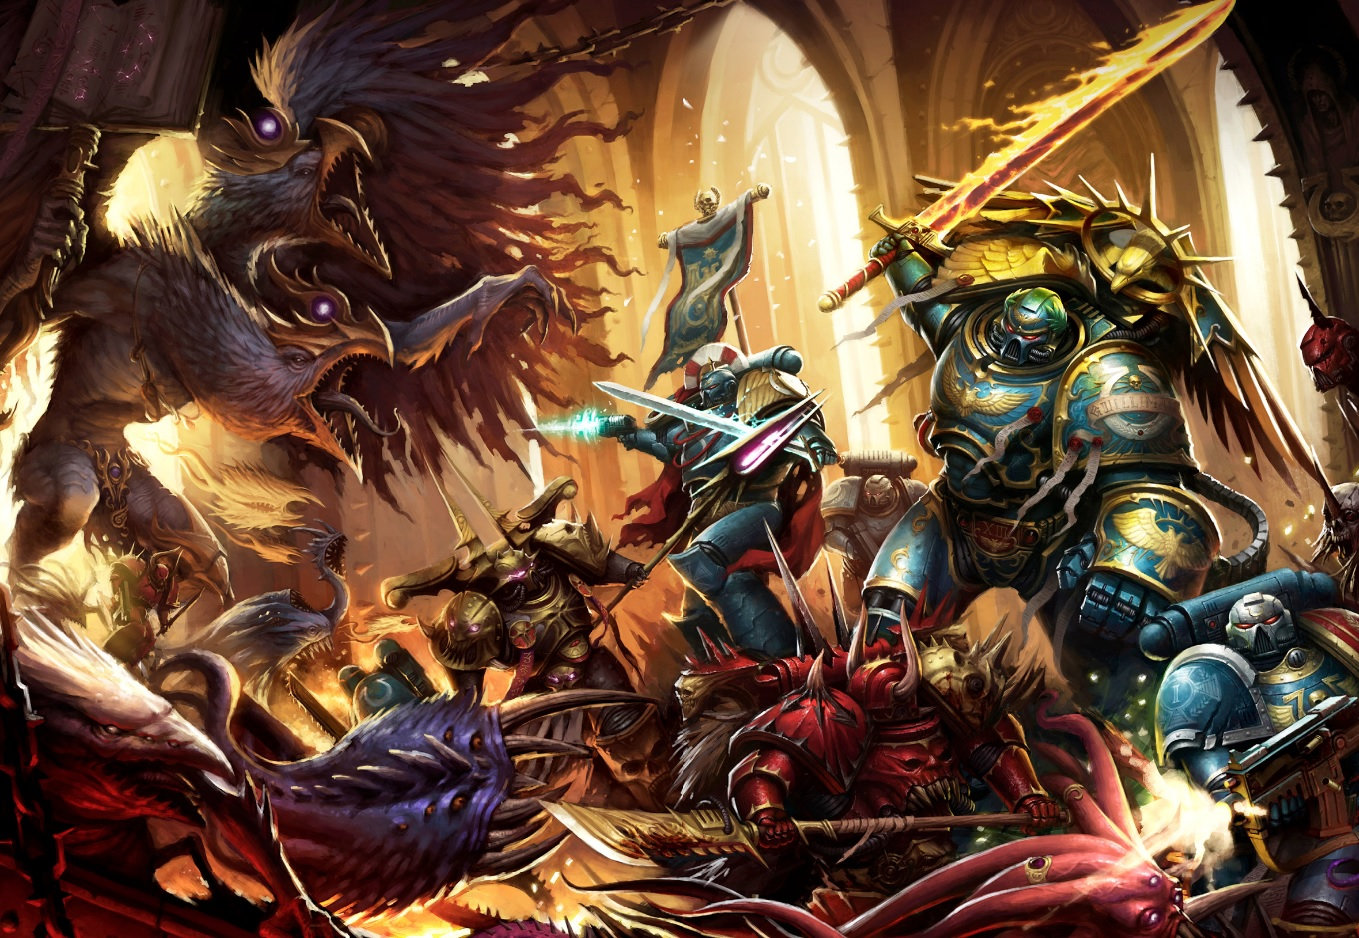 guilliman_battles_chaos_during_the_terran_crusade_by_bloodrave1984-db3rngj.jpg